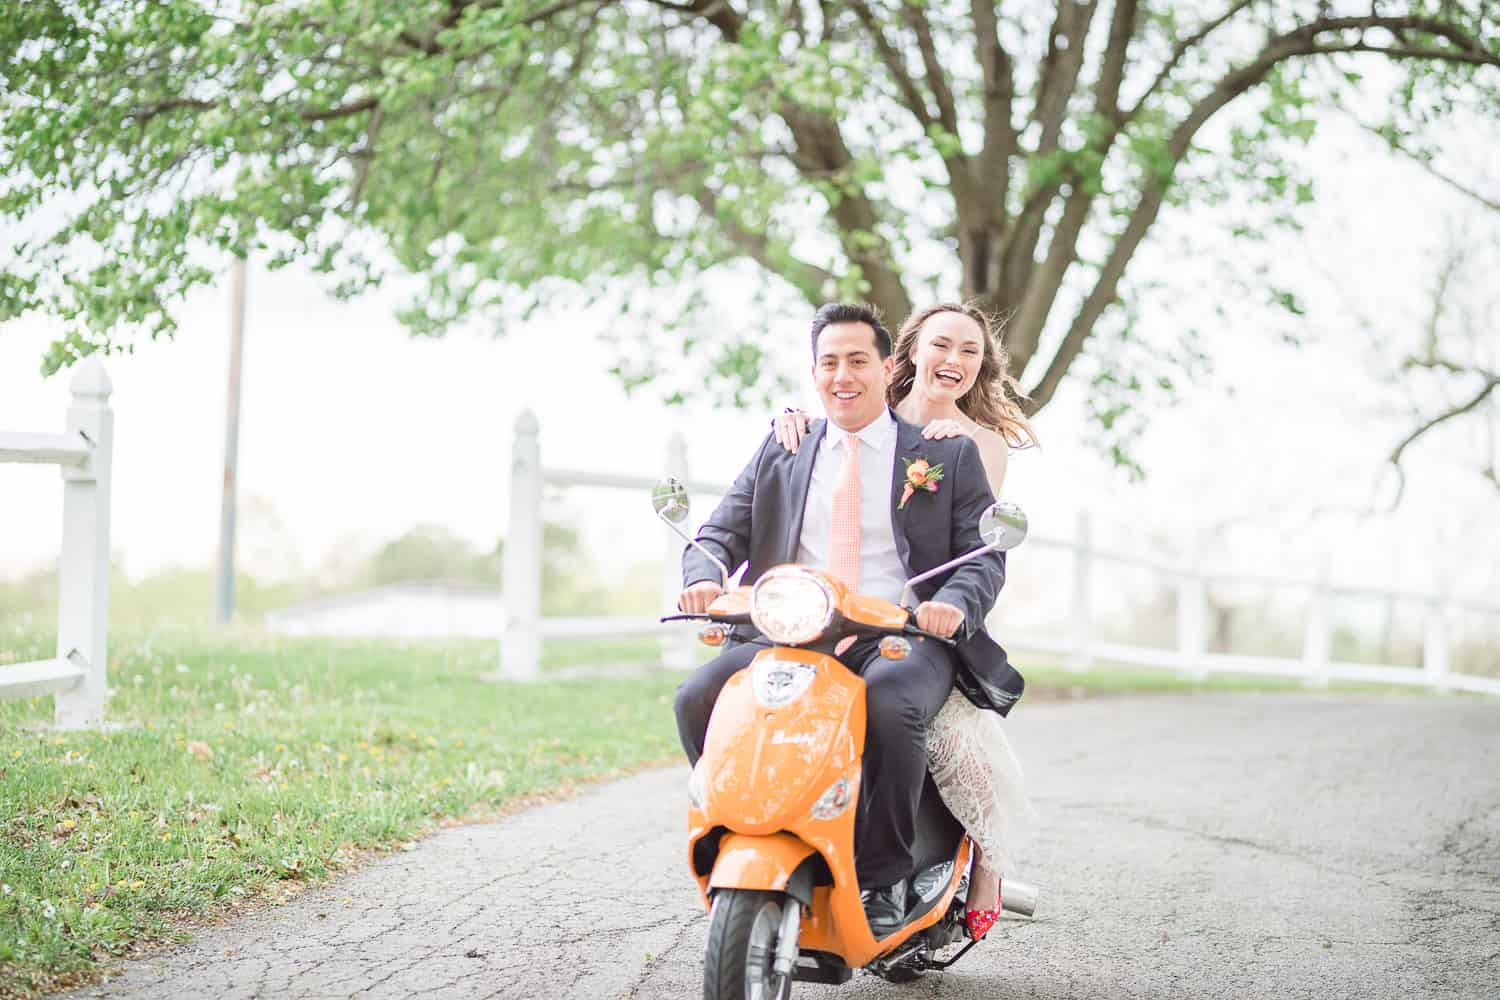 Scooter World wedding Kansas City